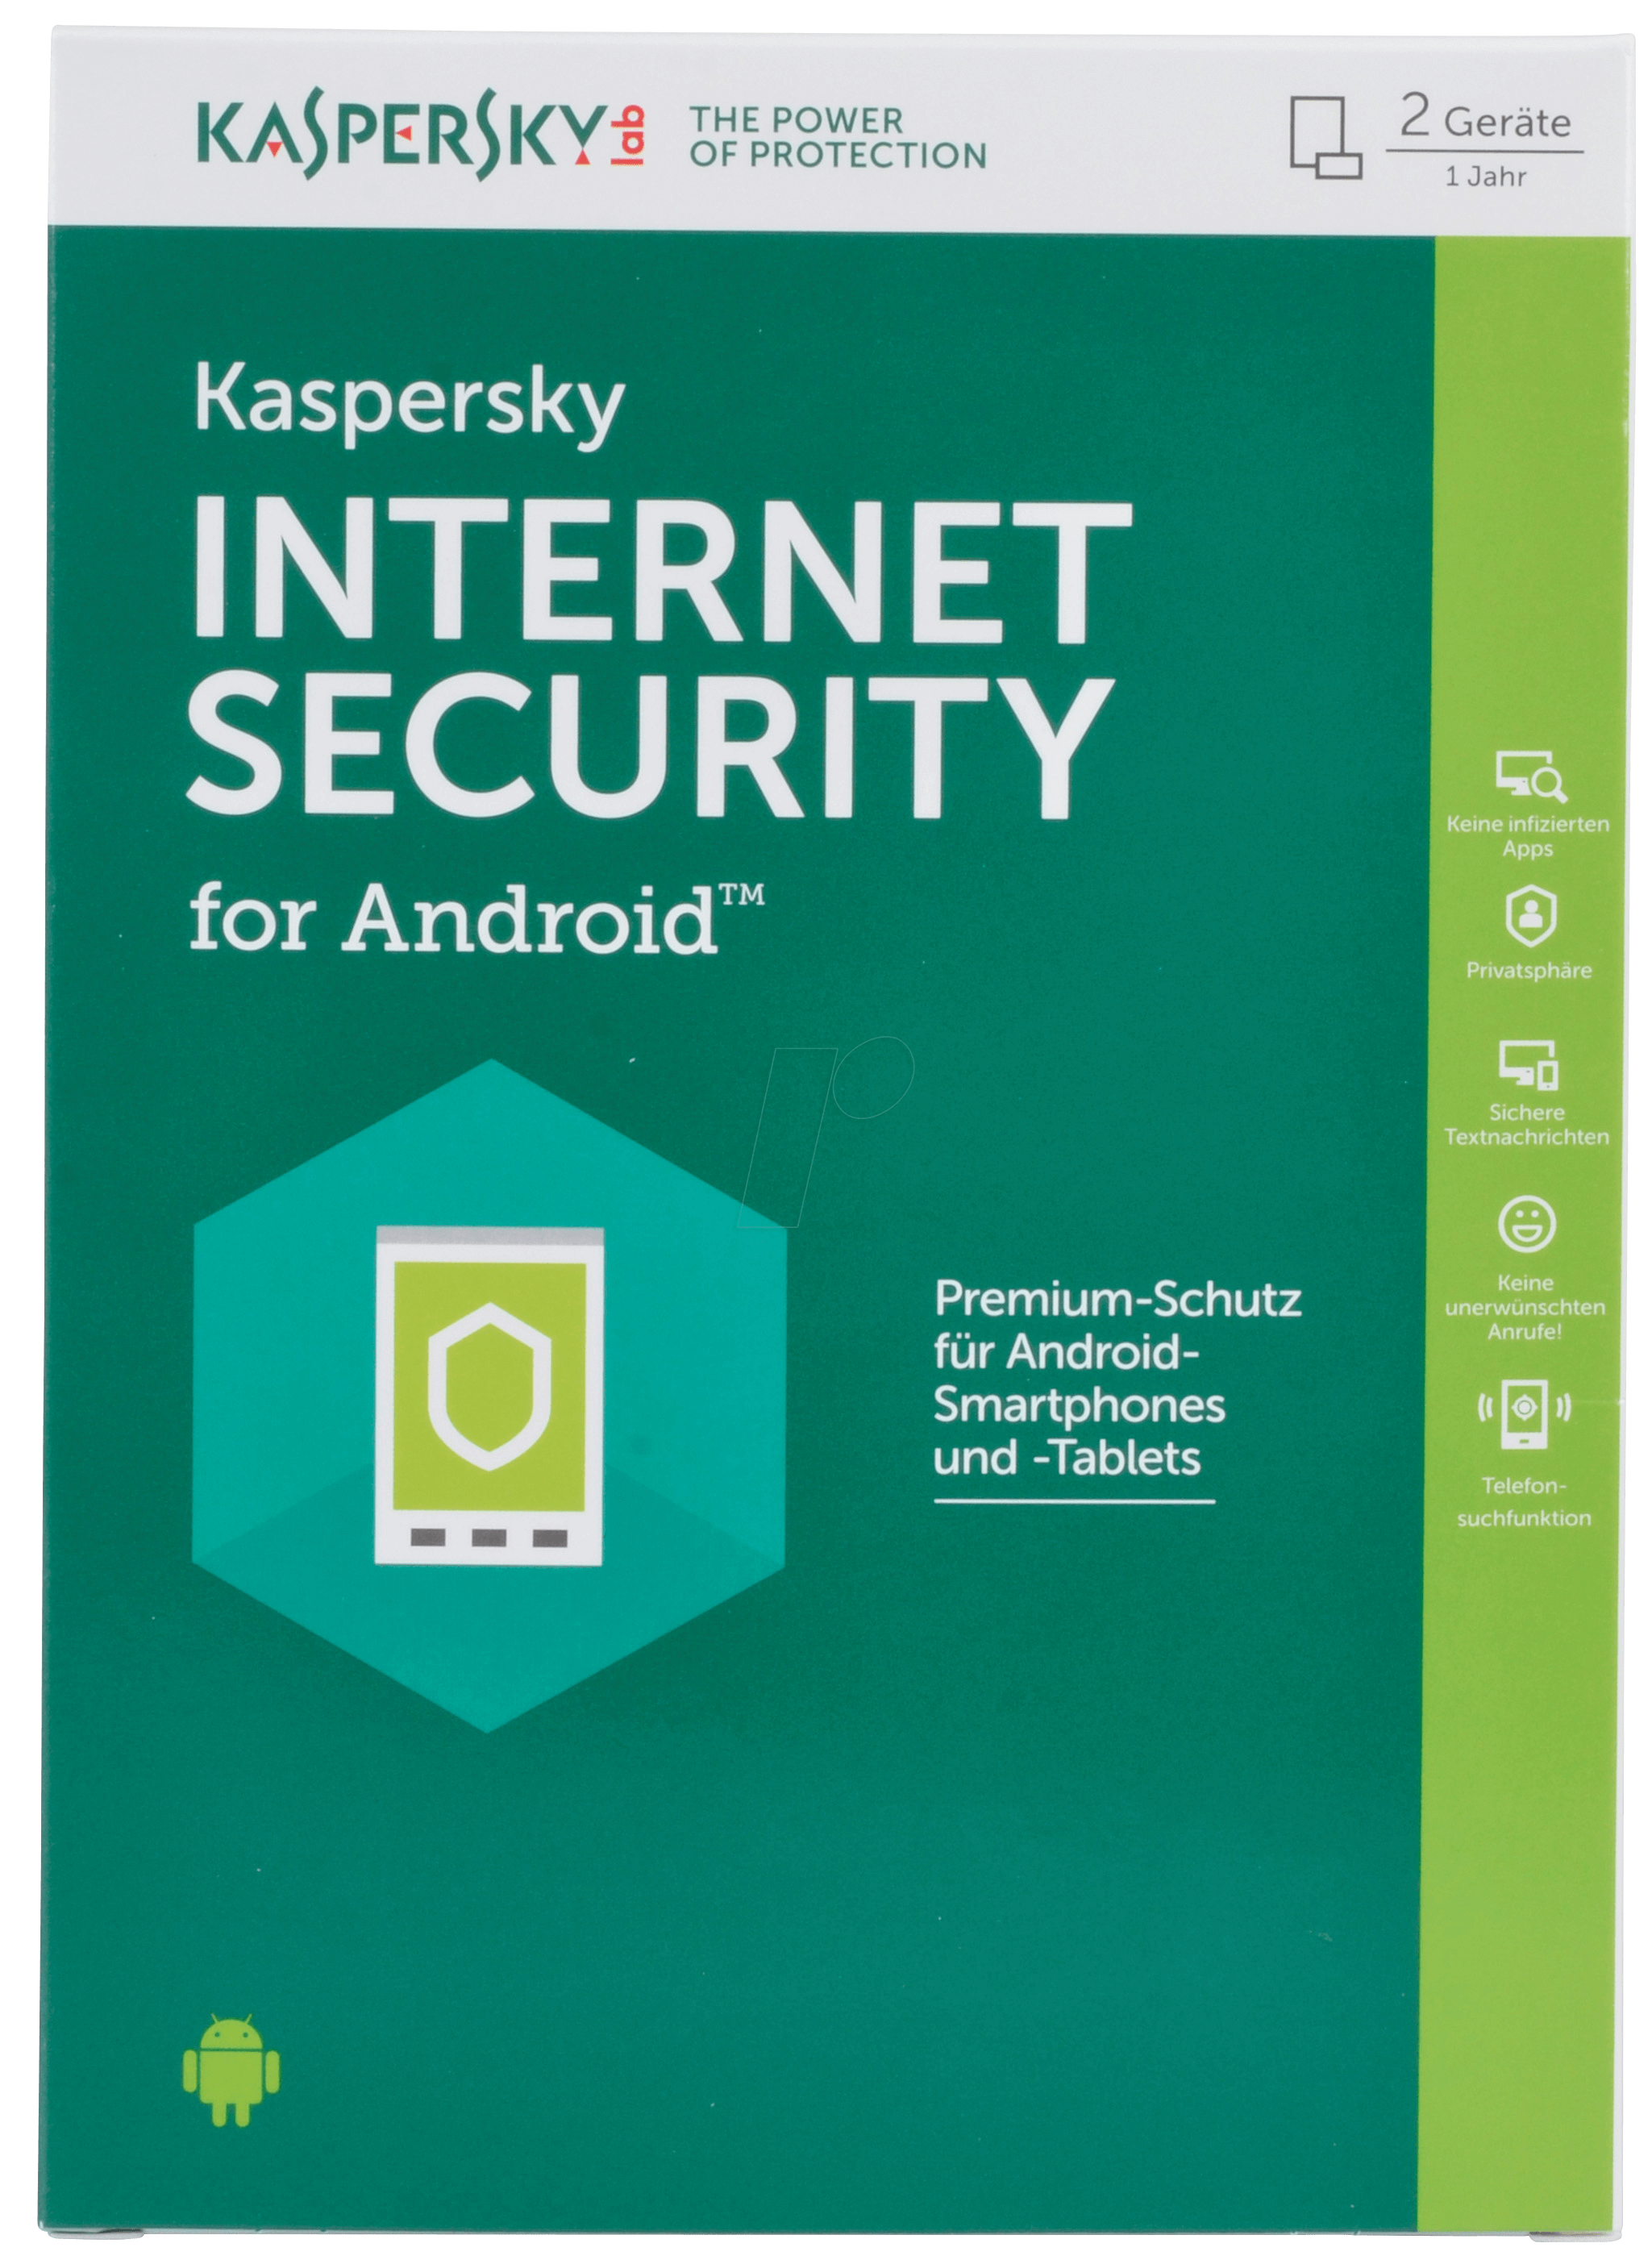 https://cdn-reichelt.de/bilder/web/xxl_ws/G500/KASPERSKY_IS2016_AND_01.png